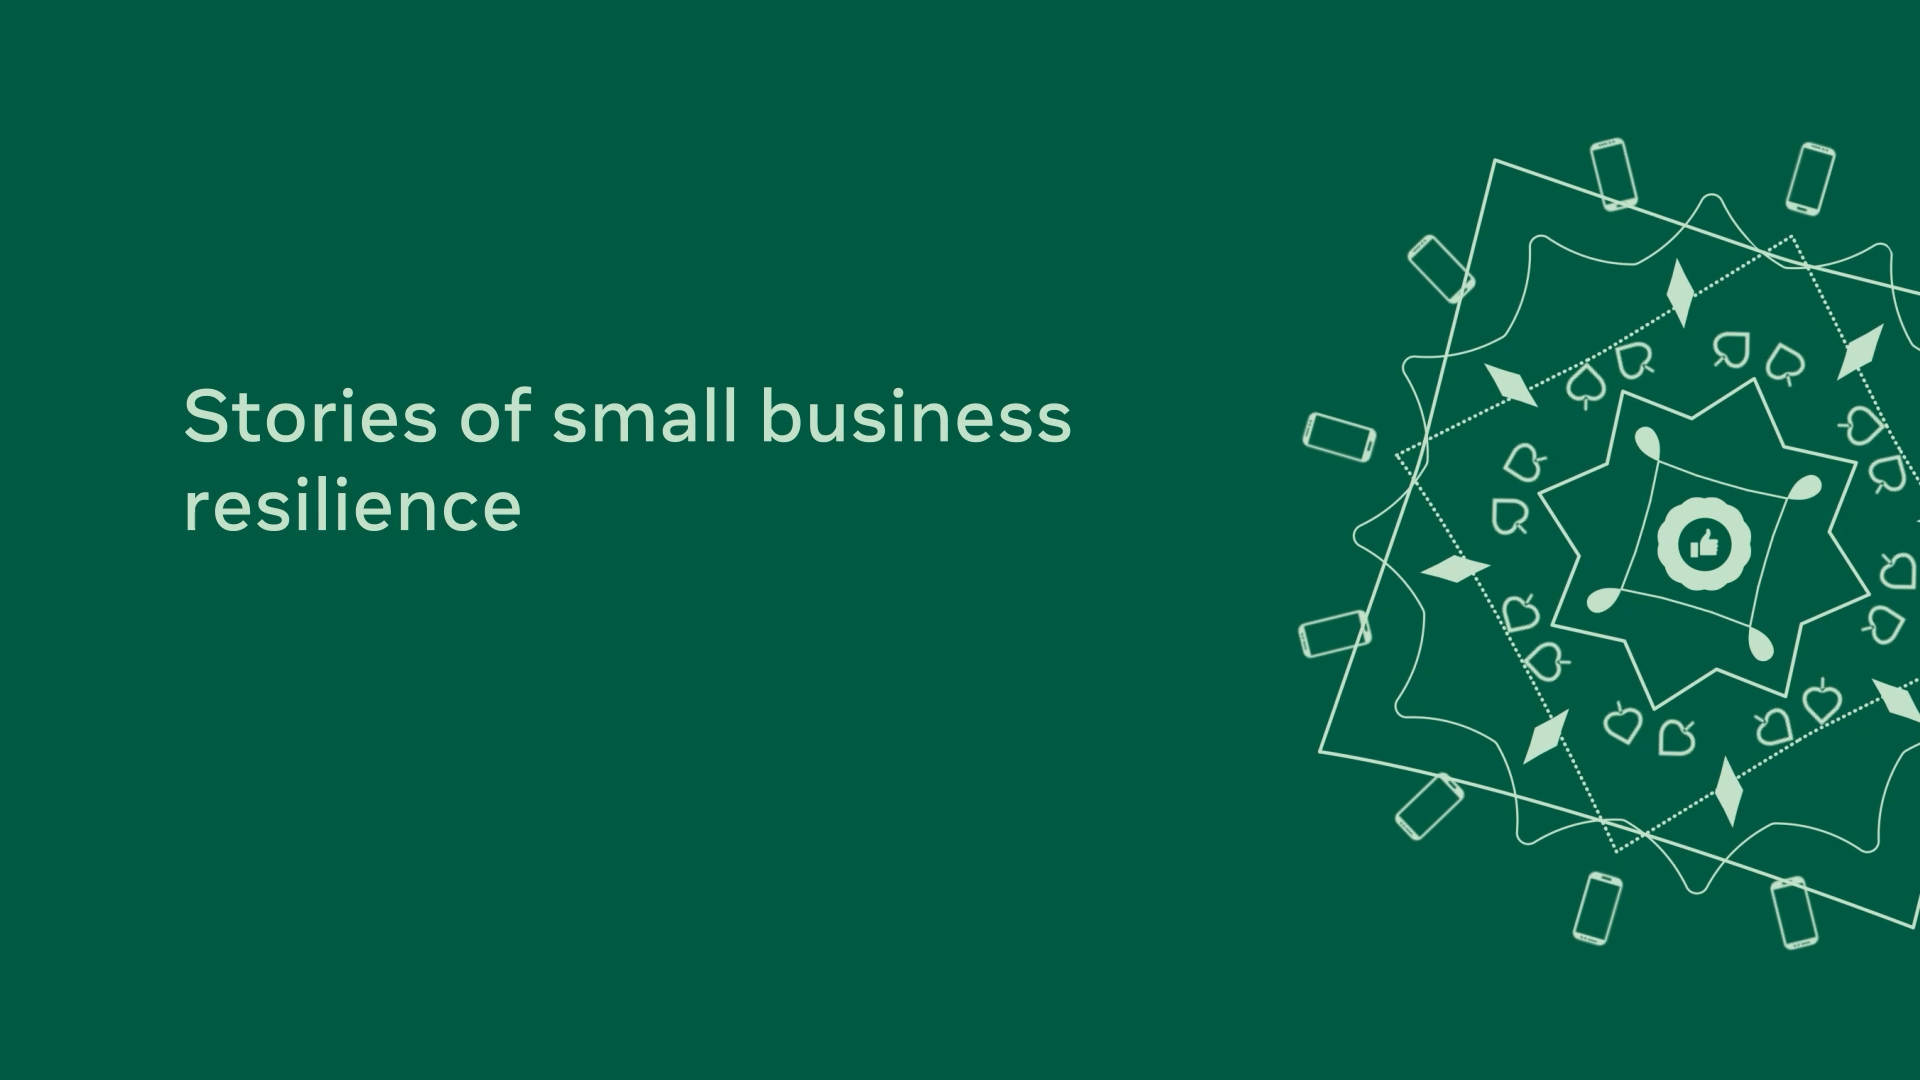 Stories of small business resilience